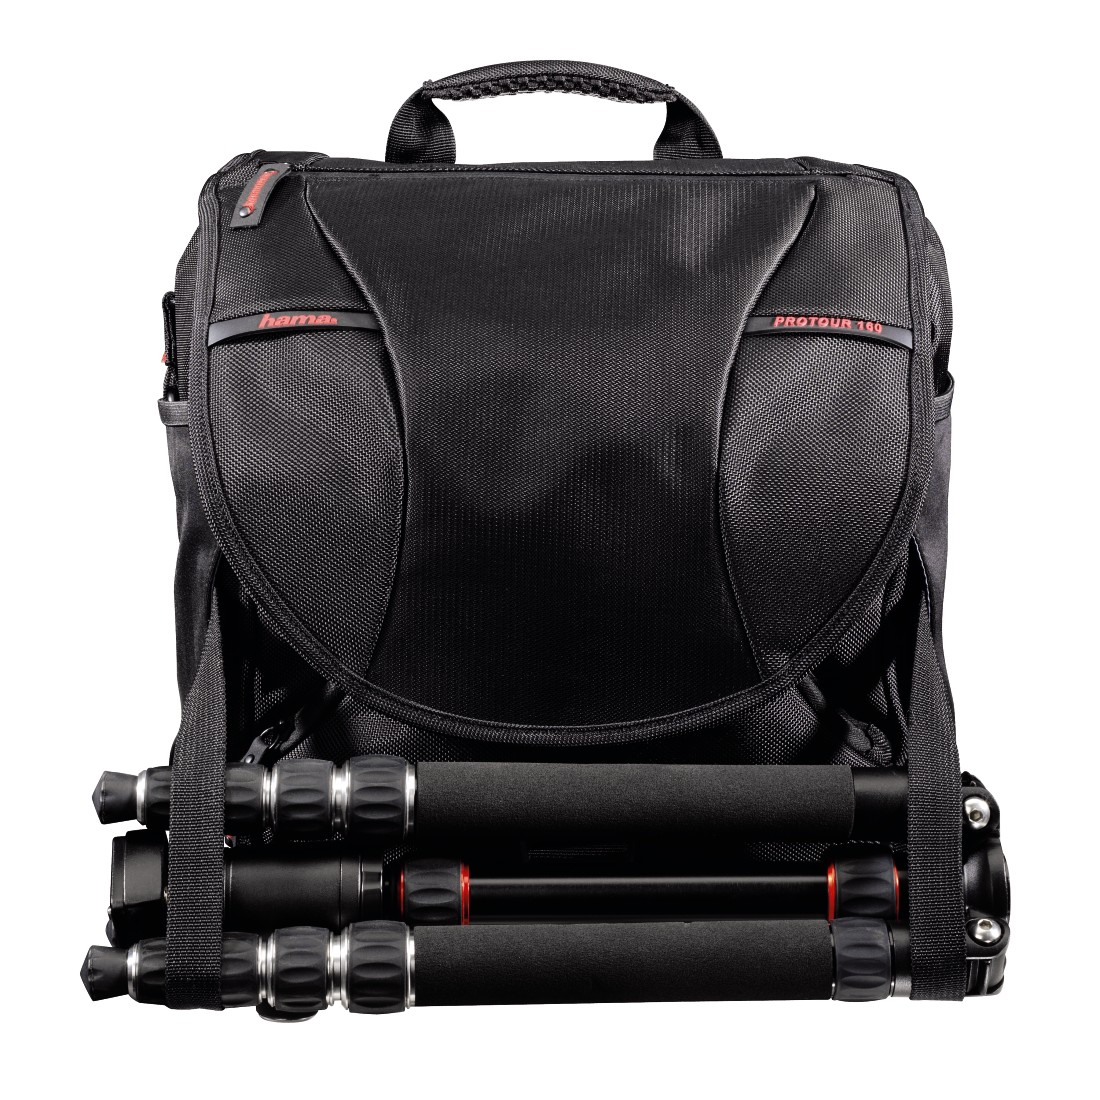 dex6 High-Res Detail 6 - Hama, Protour Camera Bag, 200, black